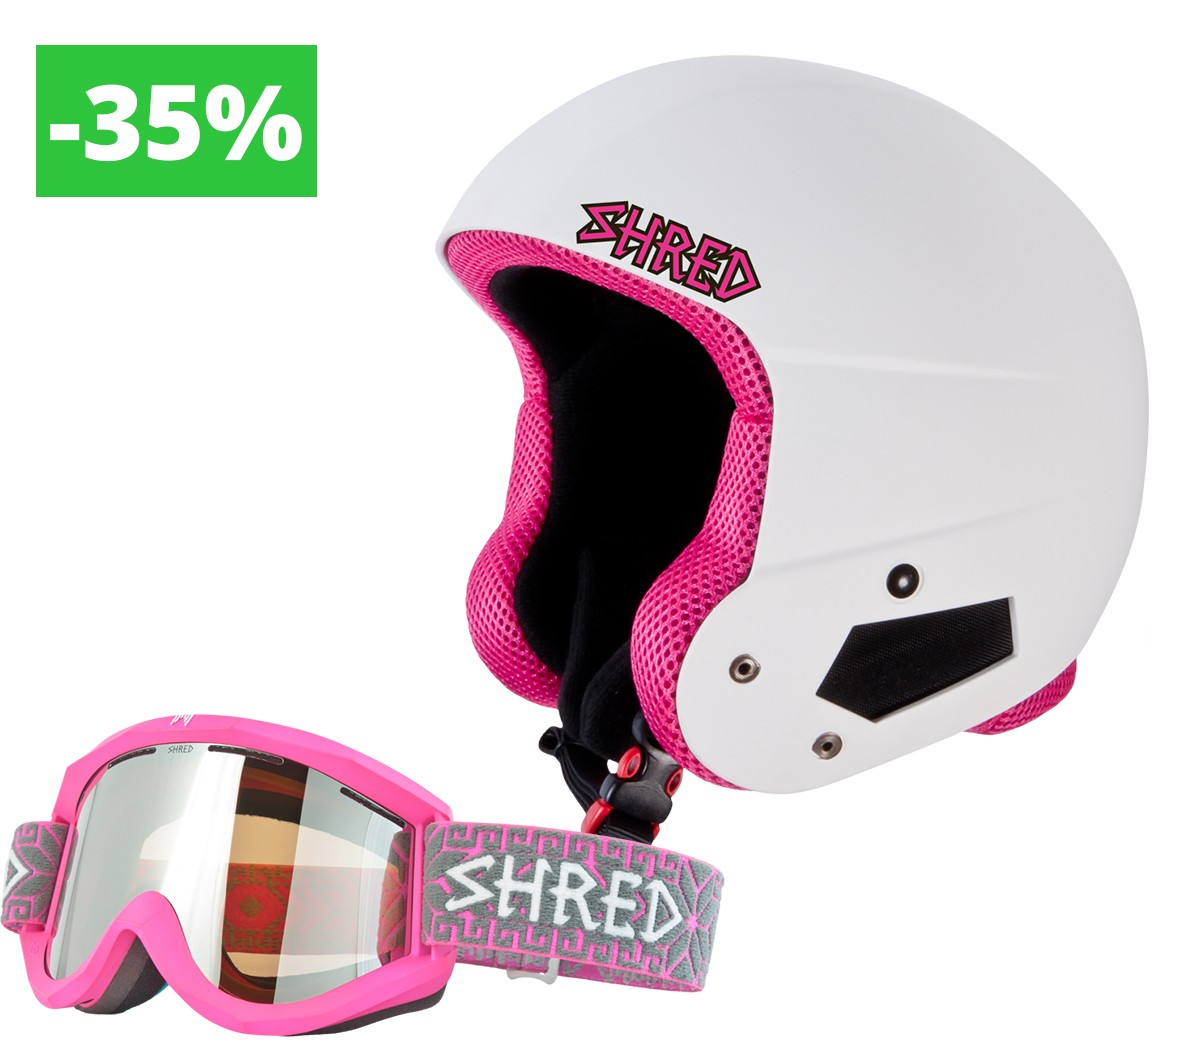 Shred set Brain Bucket Raptor Whitey + Soaza Norfolk Pink